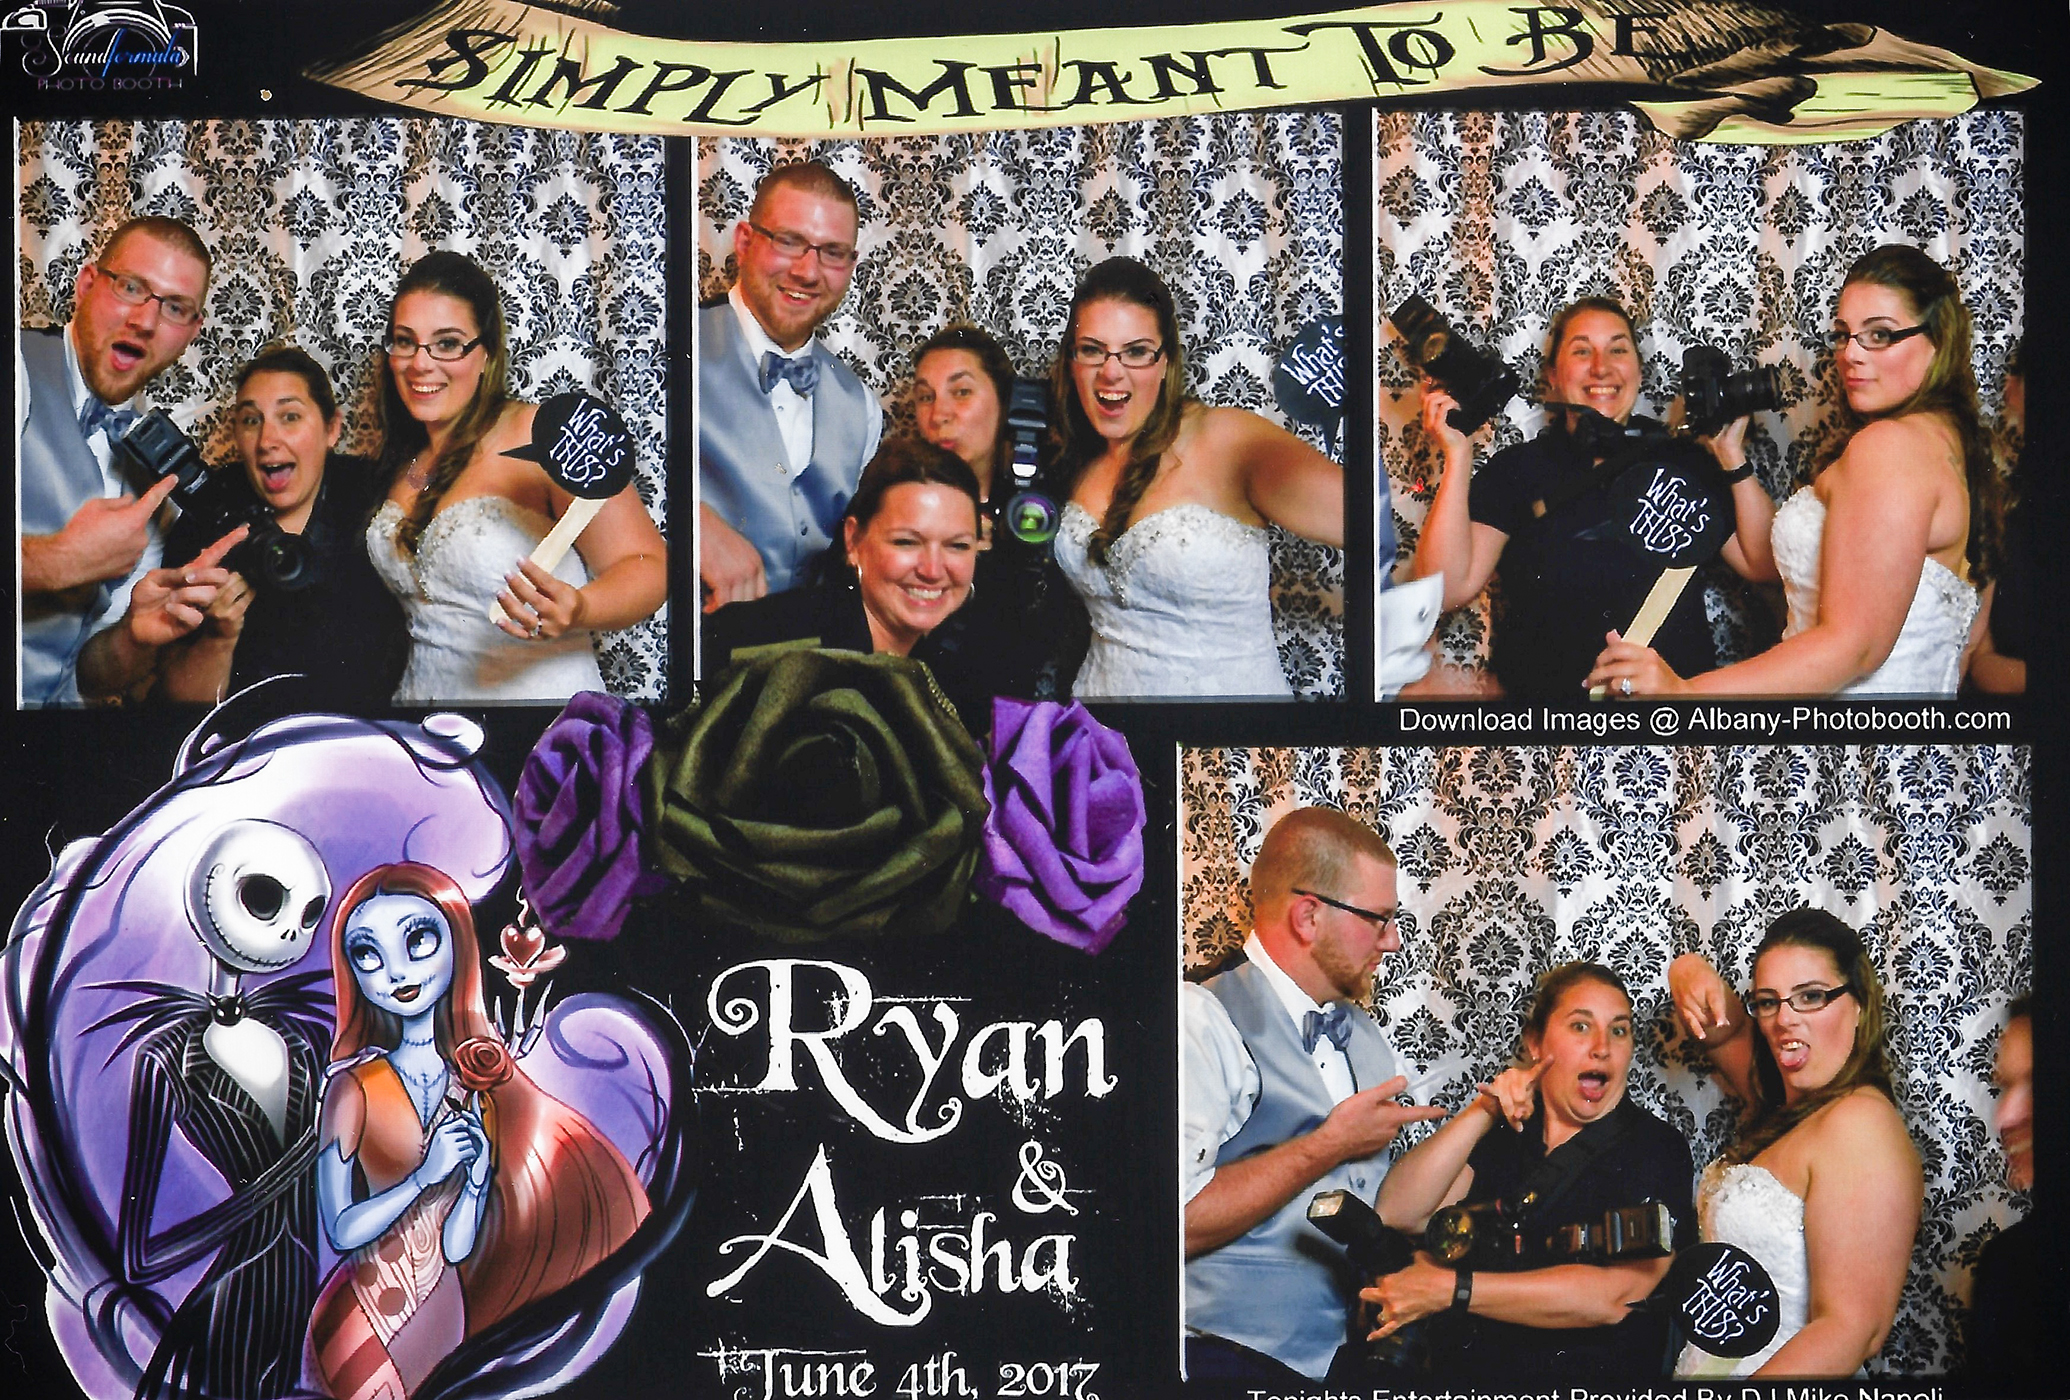 All Occasions Photography Albany NY - Wedding Photography Funny Photographer Photobooth Collage